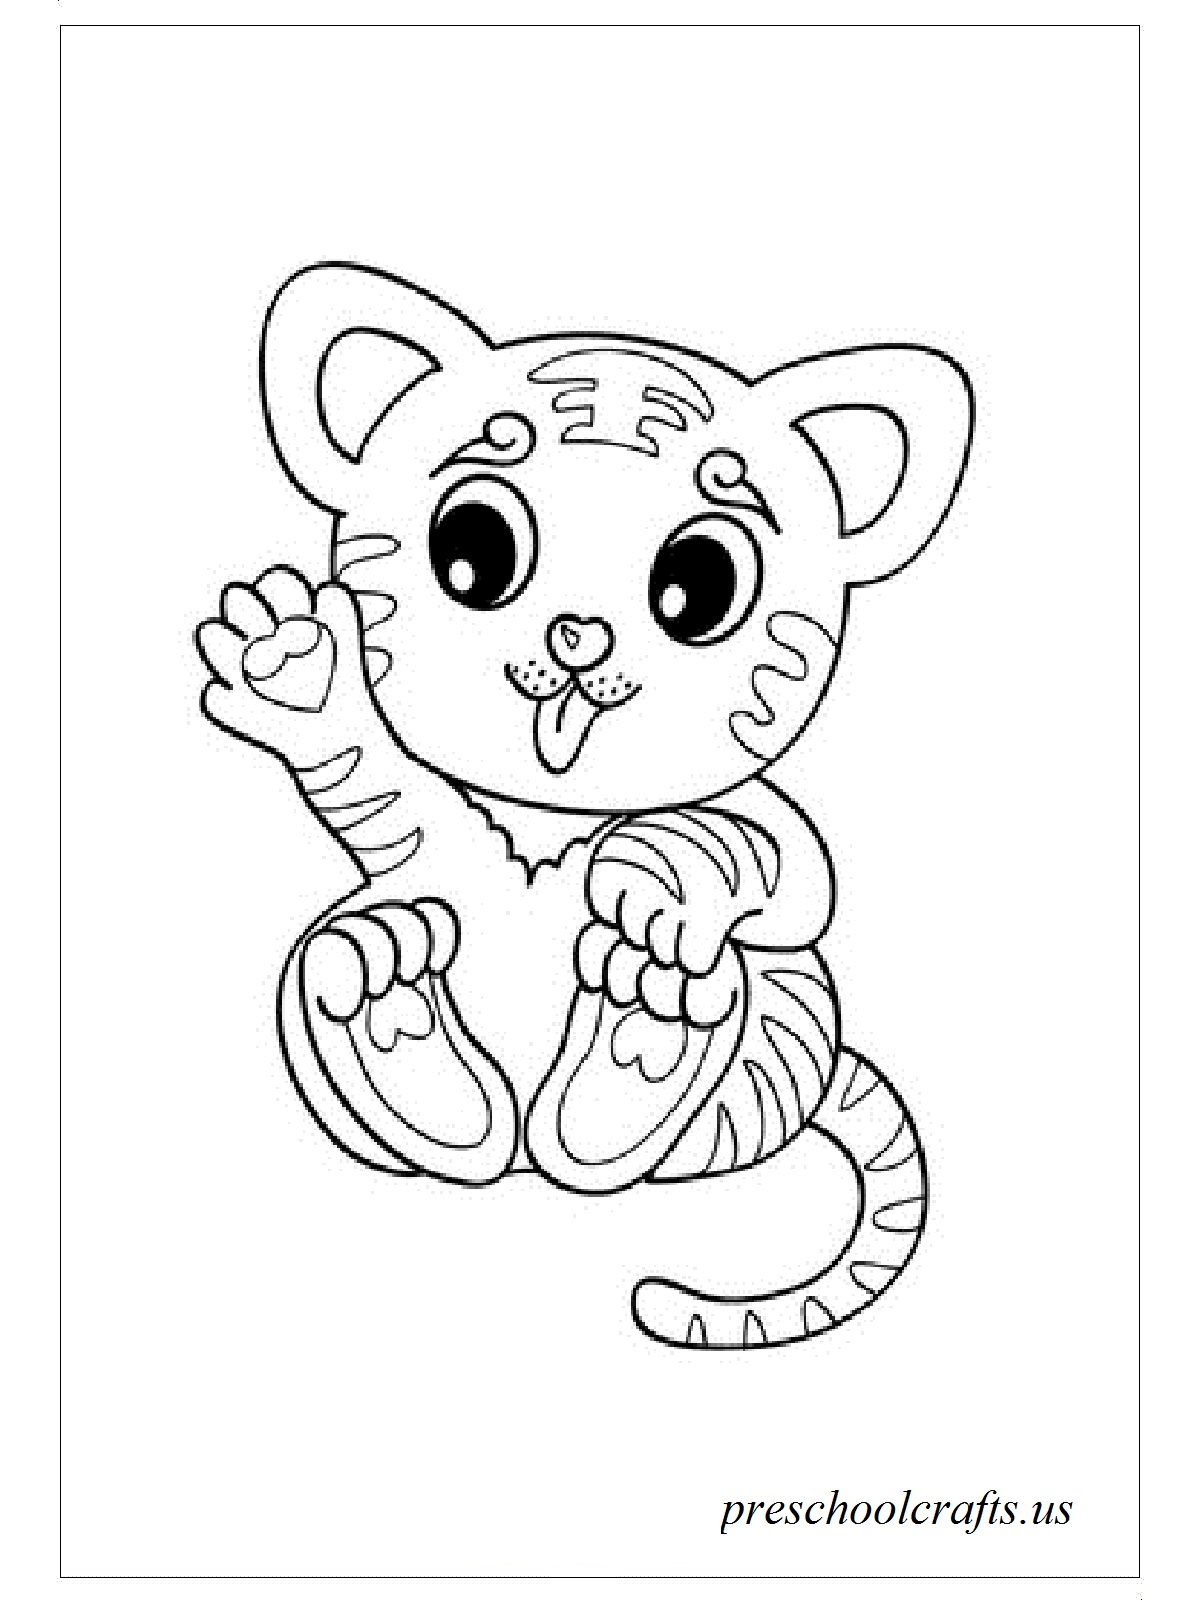 preschool tiger coloring pages download free printable tiger coloring pages for preschool pages preschool coloring tiger